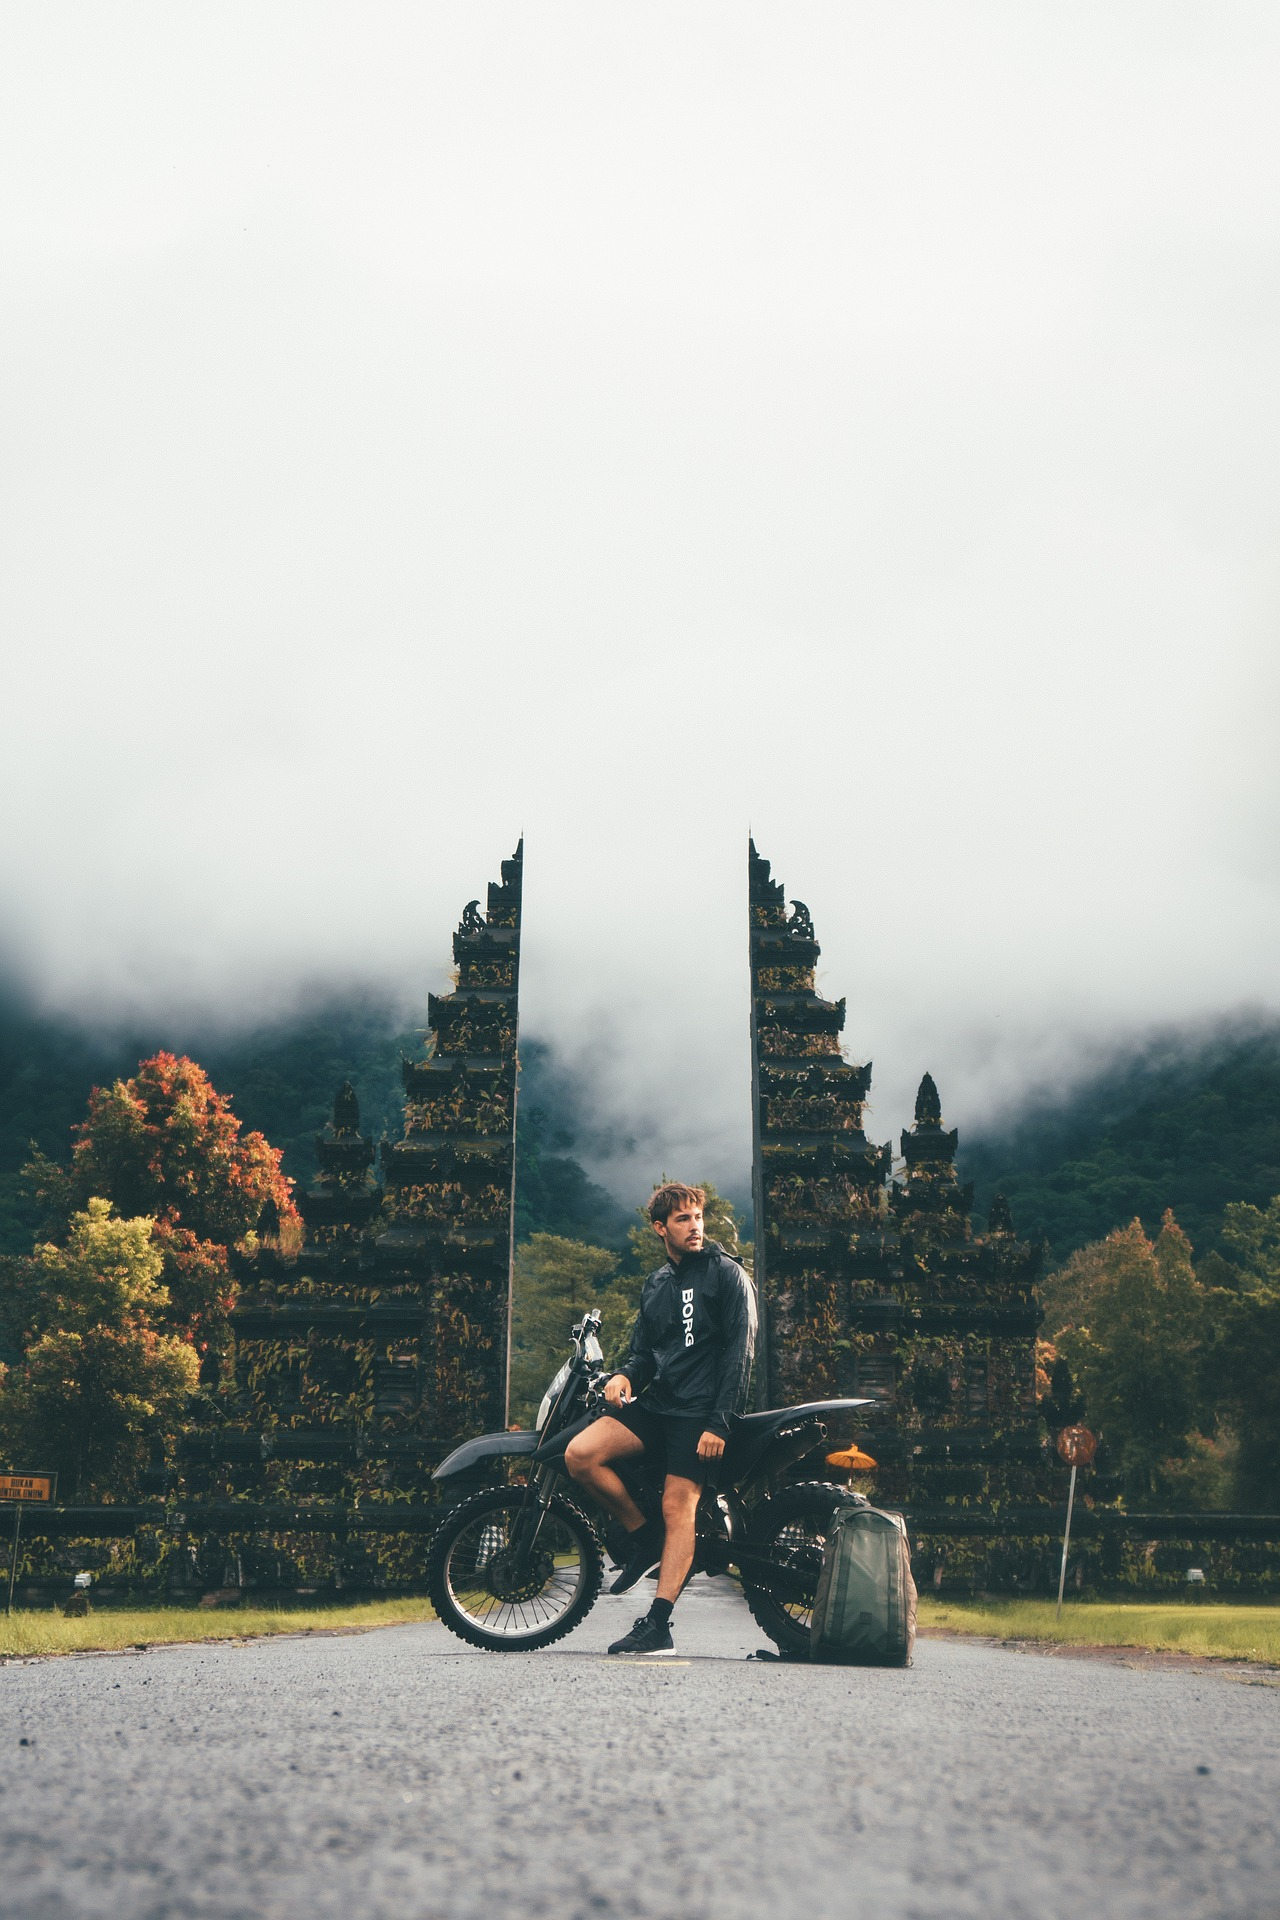 Where to go in Bali: Guide to The Best Regions to Visit in Bali